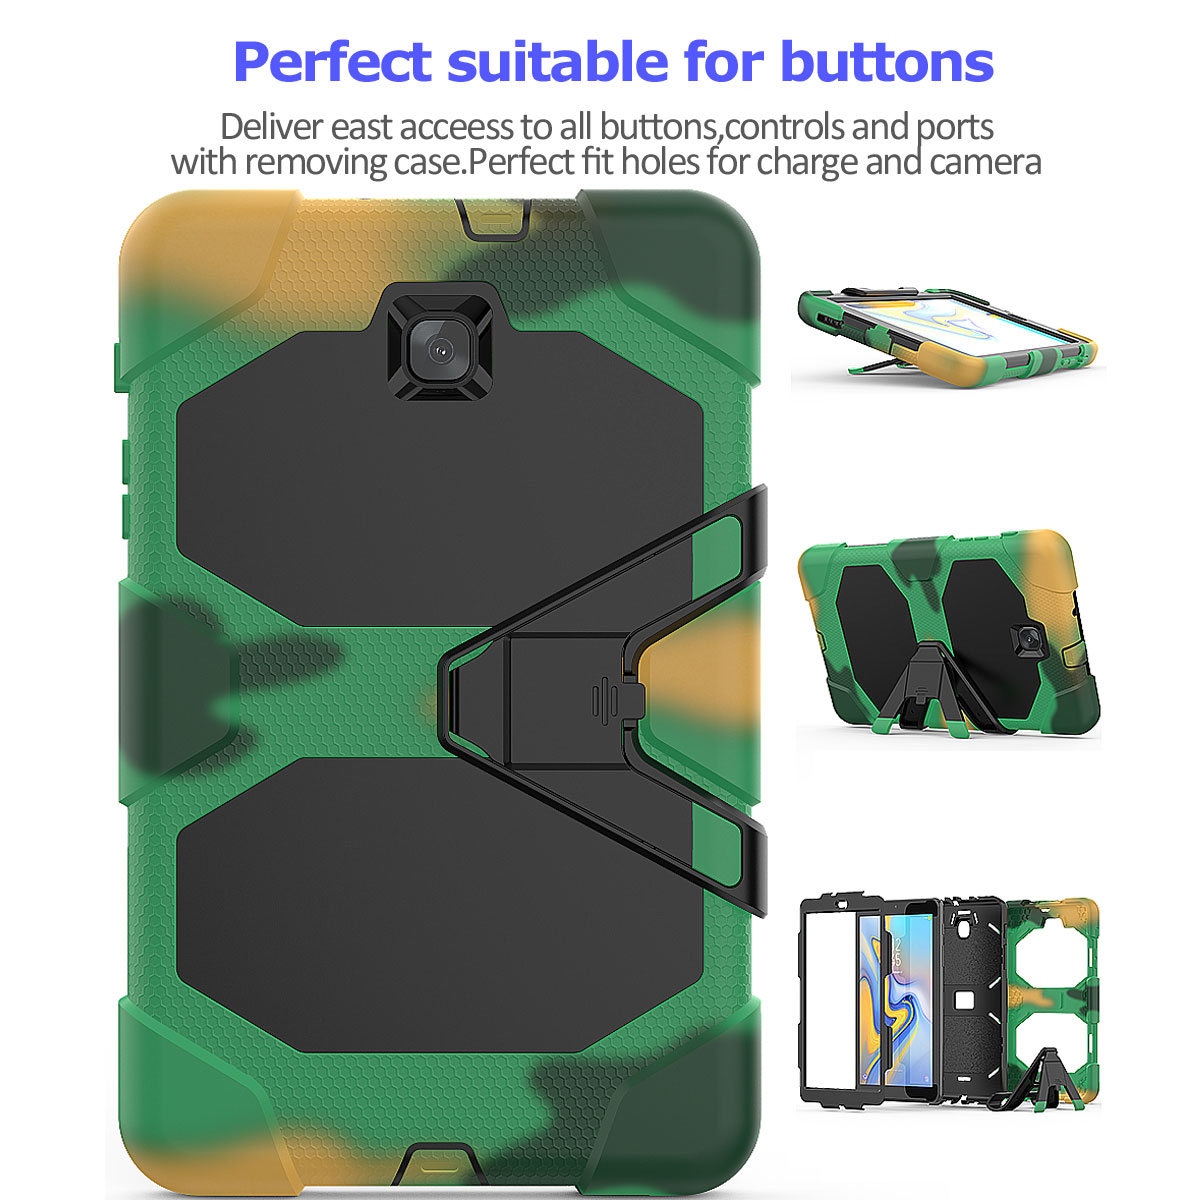 Rugged-Hard-Case-For-Samsung-Galaxy-Tab-A-8-0-2018-SM-T387-with-Screen-Protector thumbnail 25